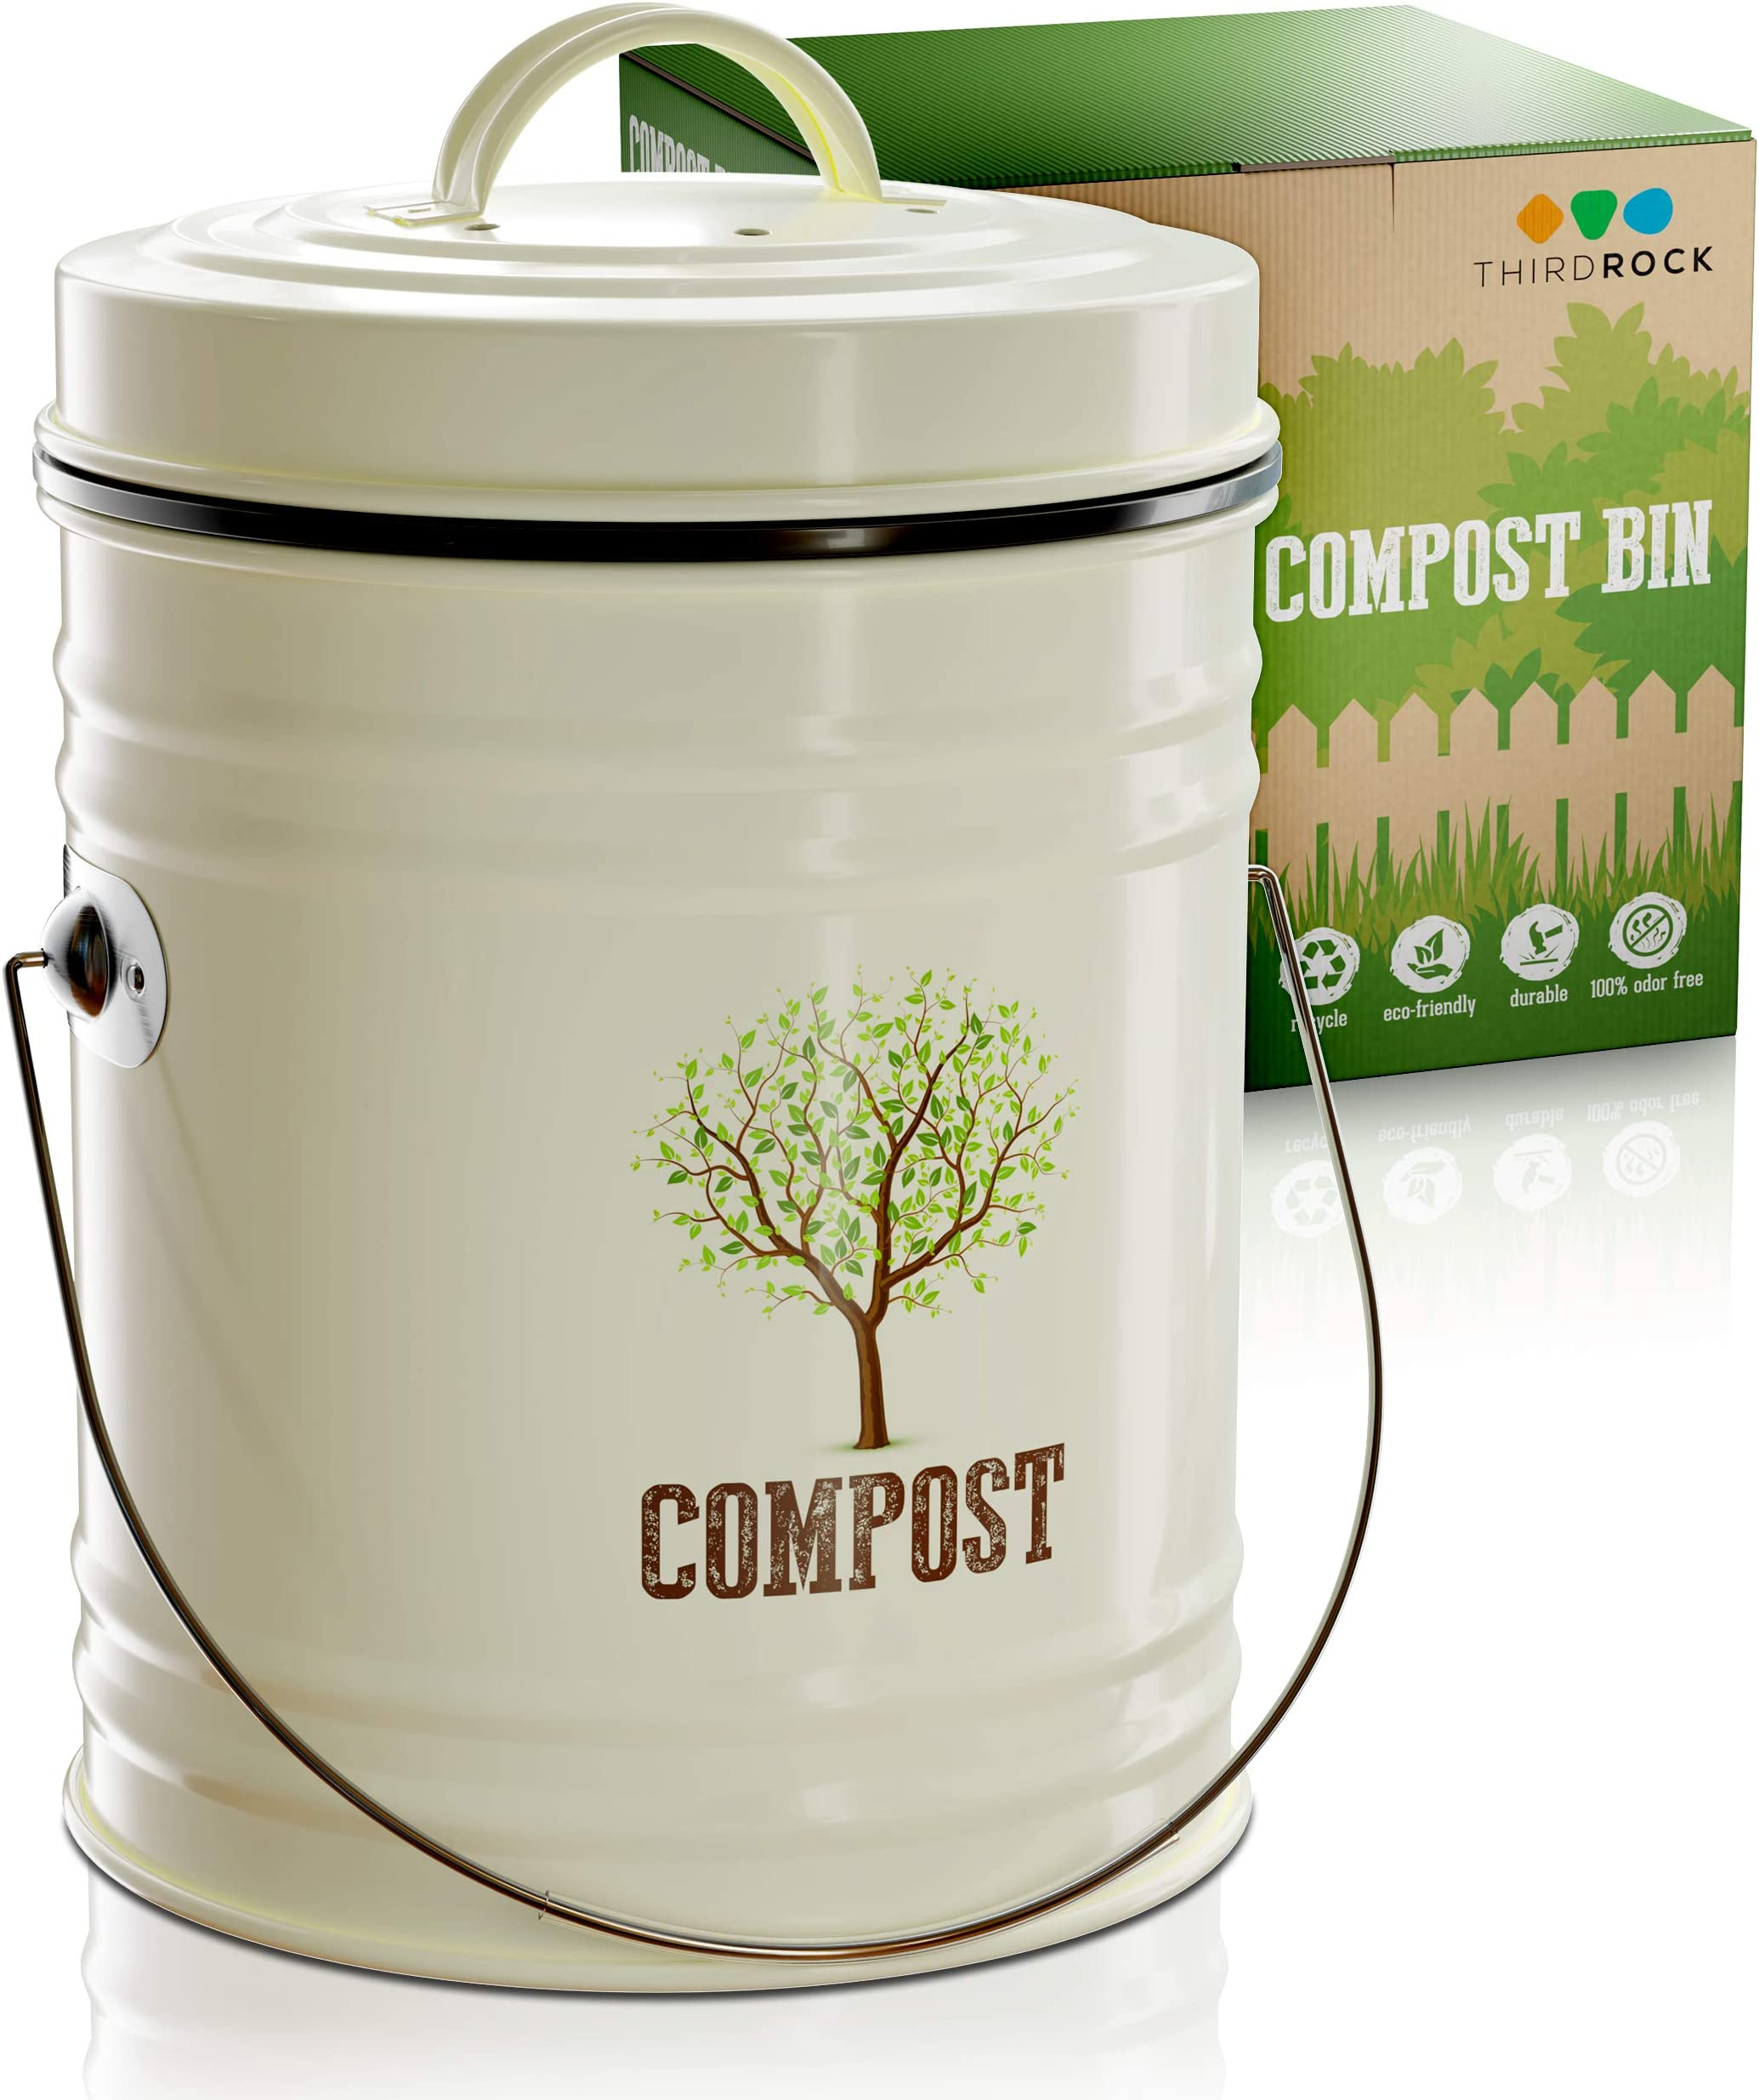 Third Rock Compost Bin - 1.0 Gallon Compost Pail with Inner Compost Bucket Liner - Premium Dual Layer Powder Coated Carbon Steel Countertop Compost Bin - Includes Charcoal Filter